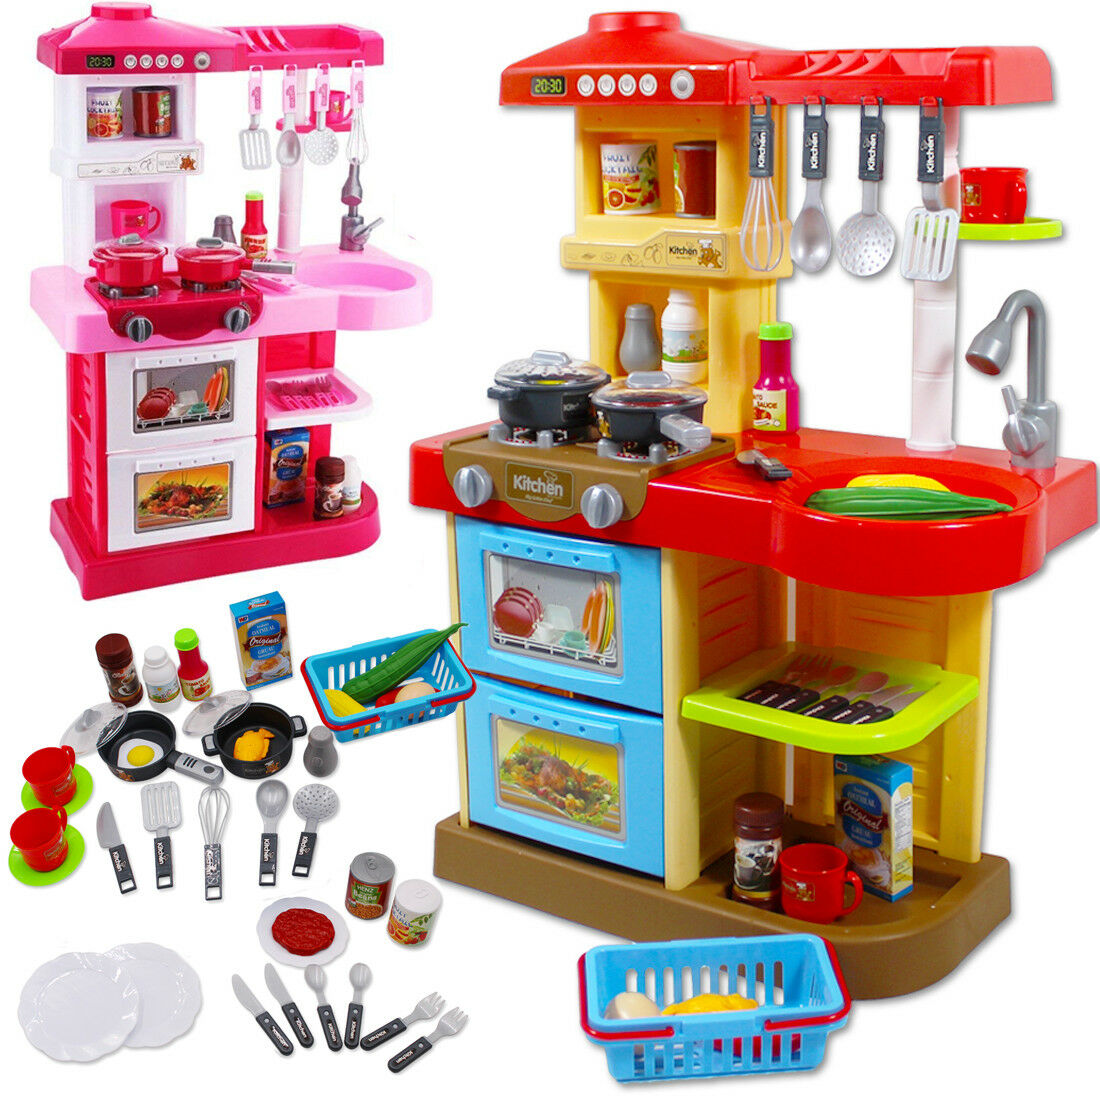 DeAO Toddler Kitchen Playset Little Chef With 30 Accessories Role Playing Game